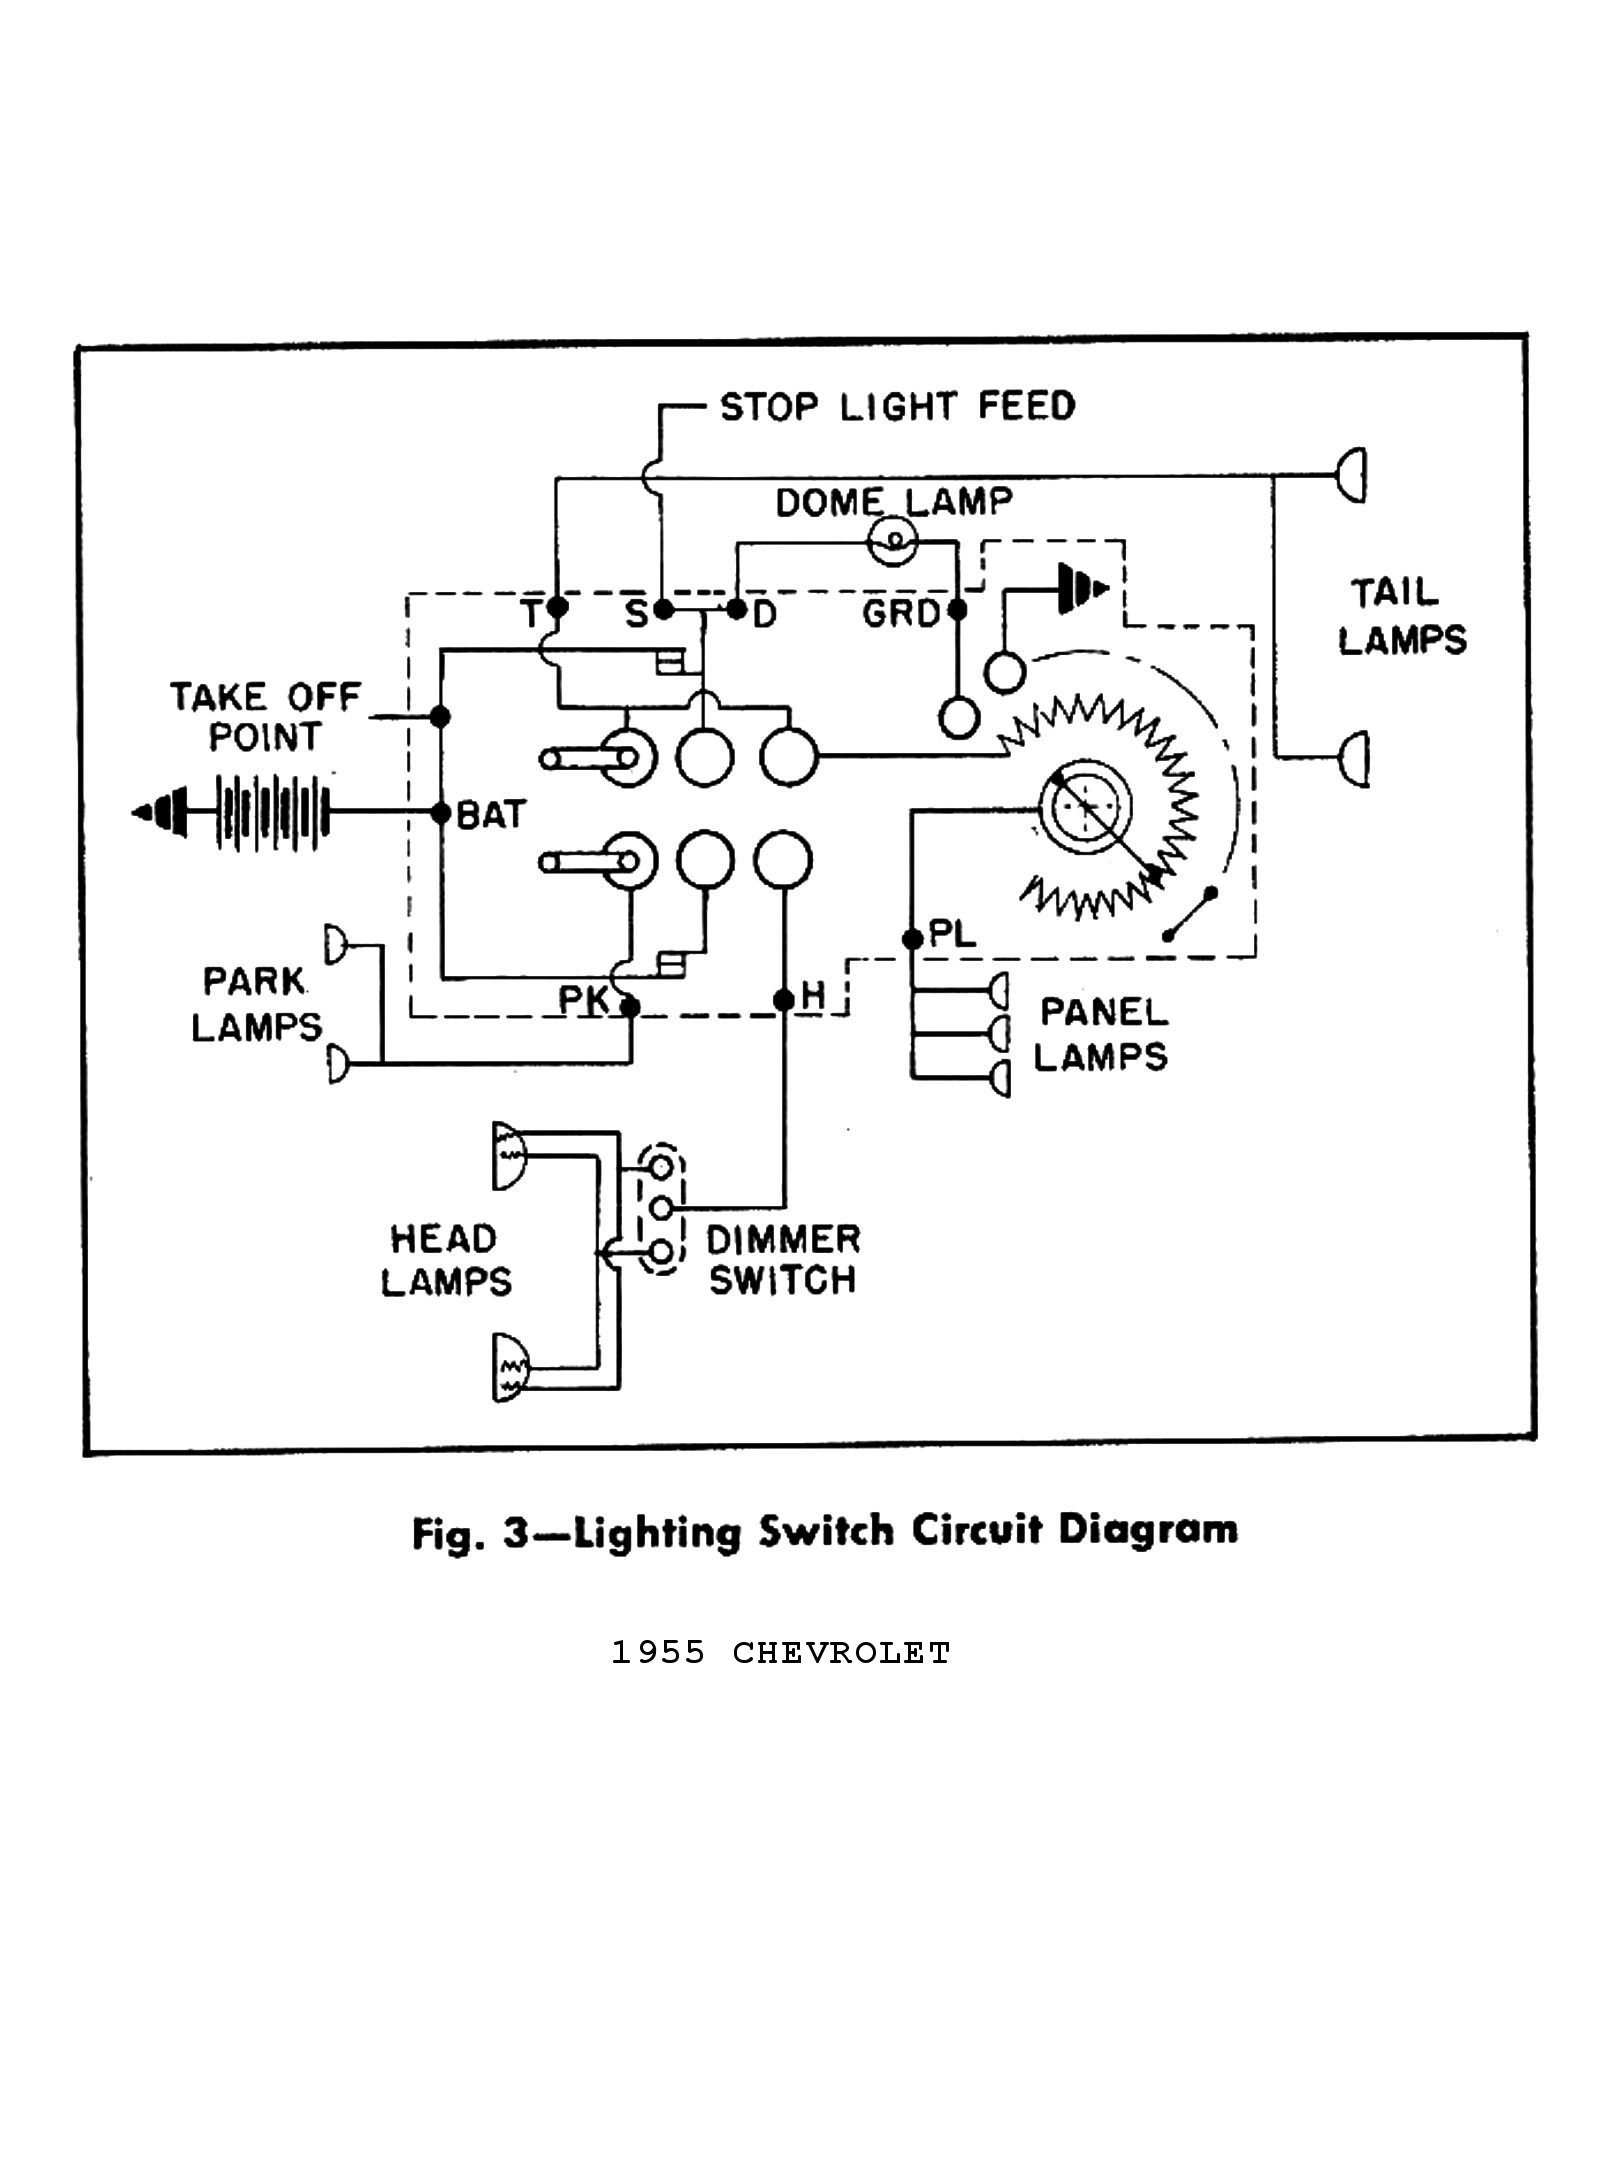 Showthread besides 2005 Pontiac Vibe Inside Room Fuse Box Diagram likewise Discussion T42326 ds796902 also Crazy Bi Level Buses North Coast Lines also Frame 320155. on 1959 gm starter wiring diagram